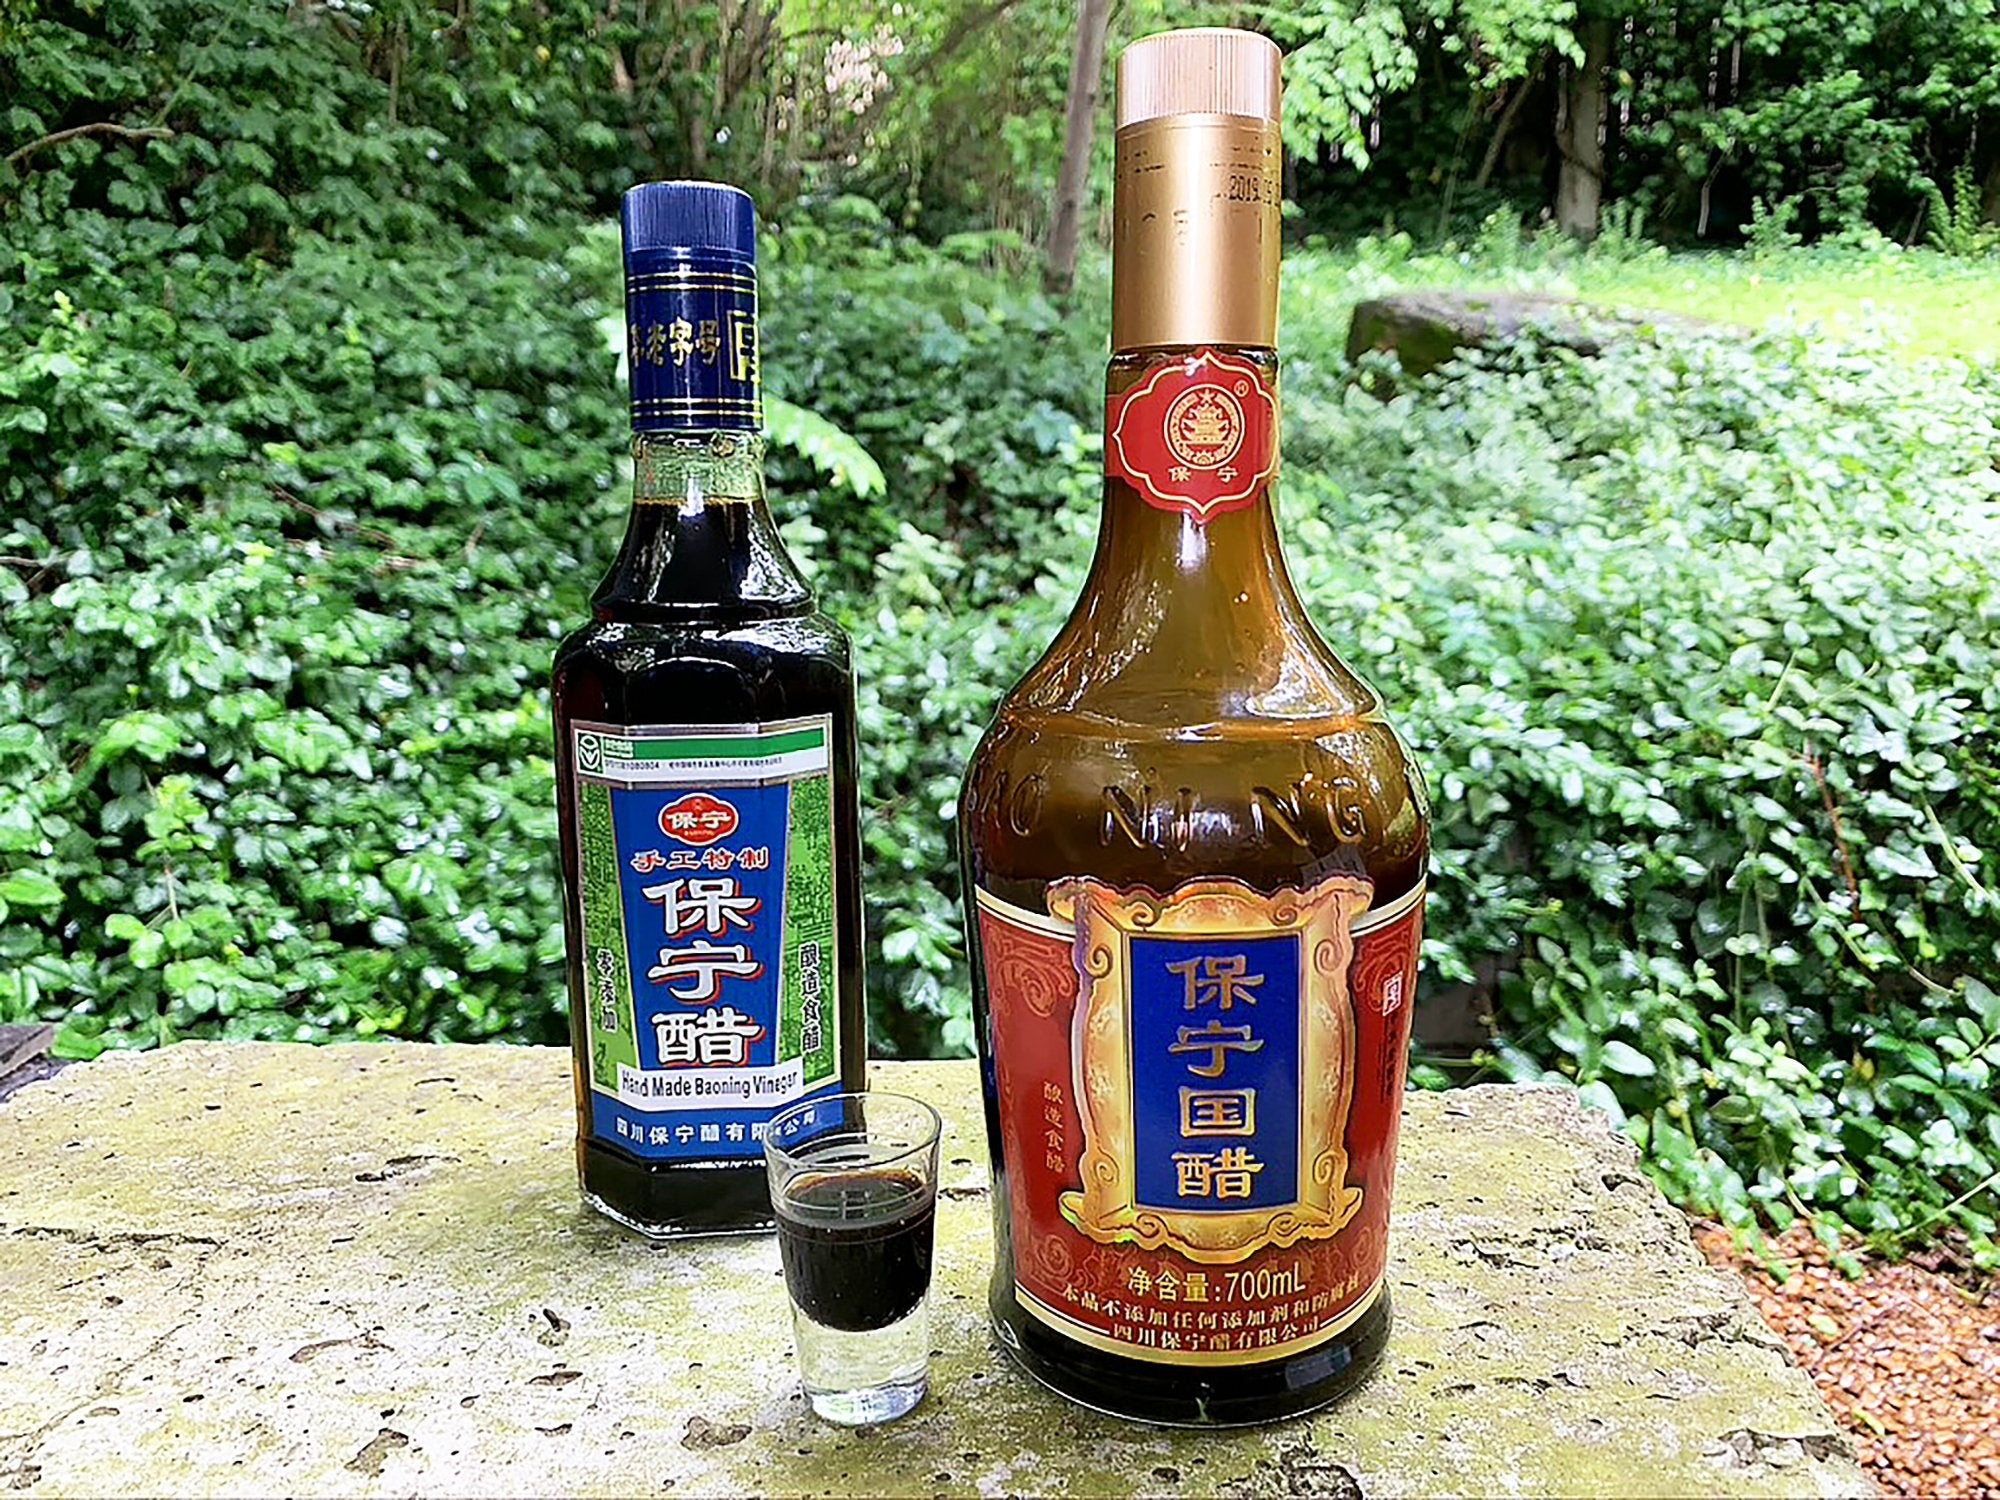 June 2020: Sichuan's Prized Baoning Vinegar Has Arrived!